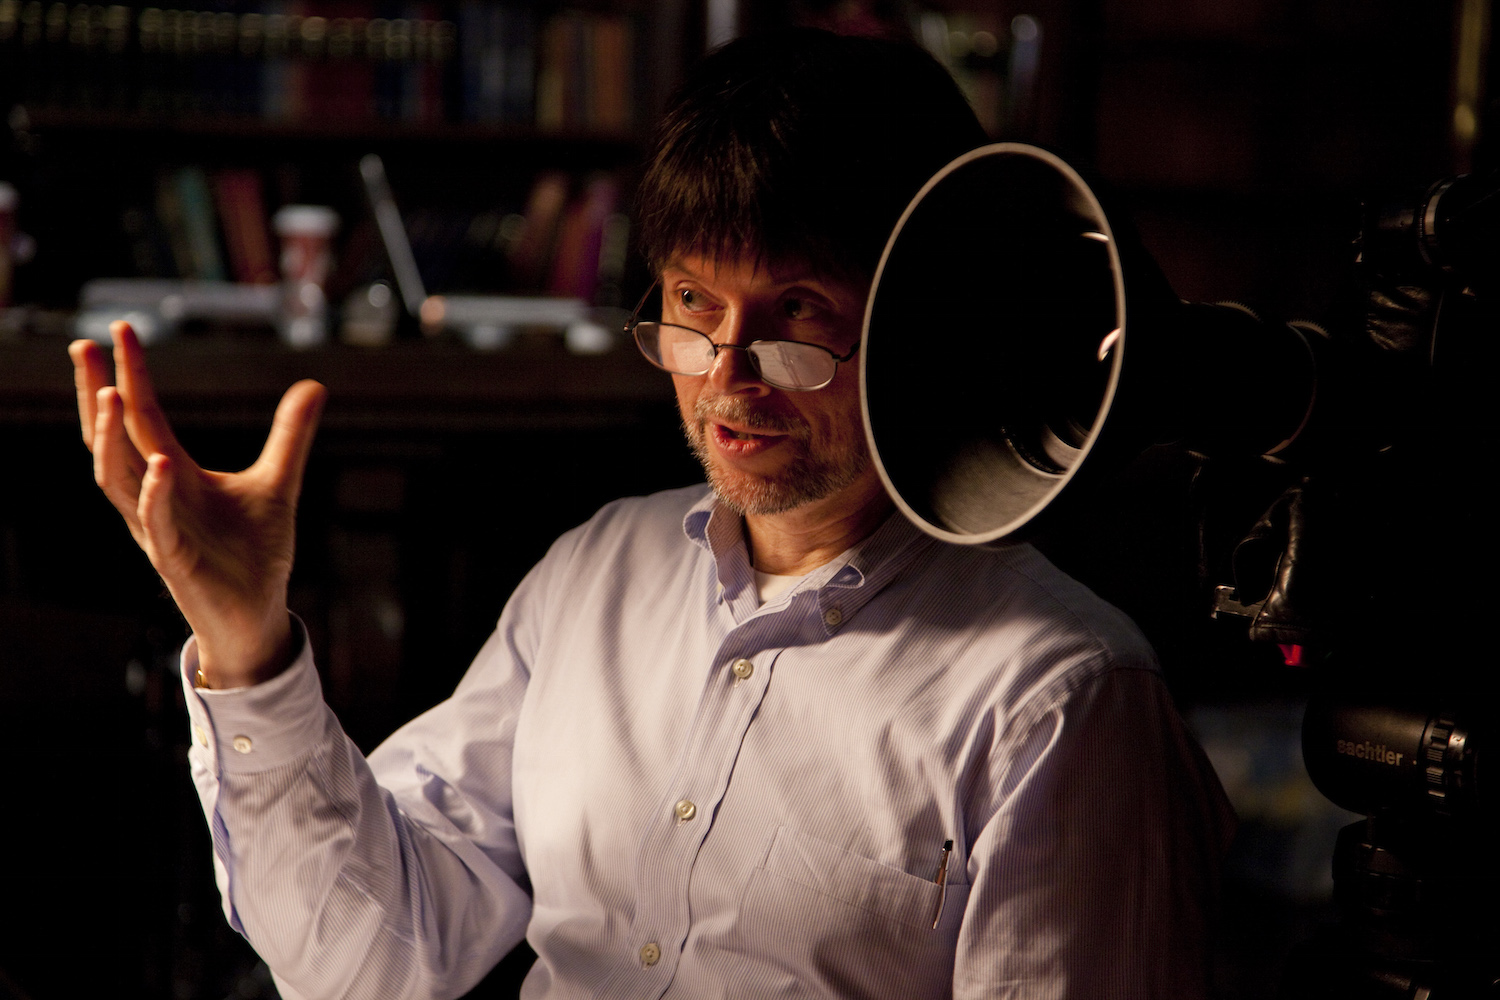 The prize is named in honor of Ken Burns, one of America's best known filmmakers